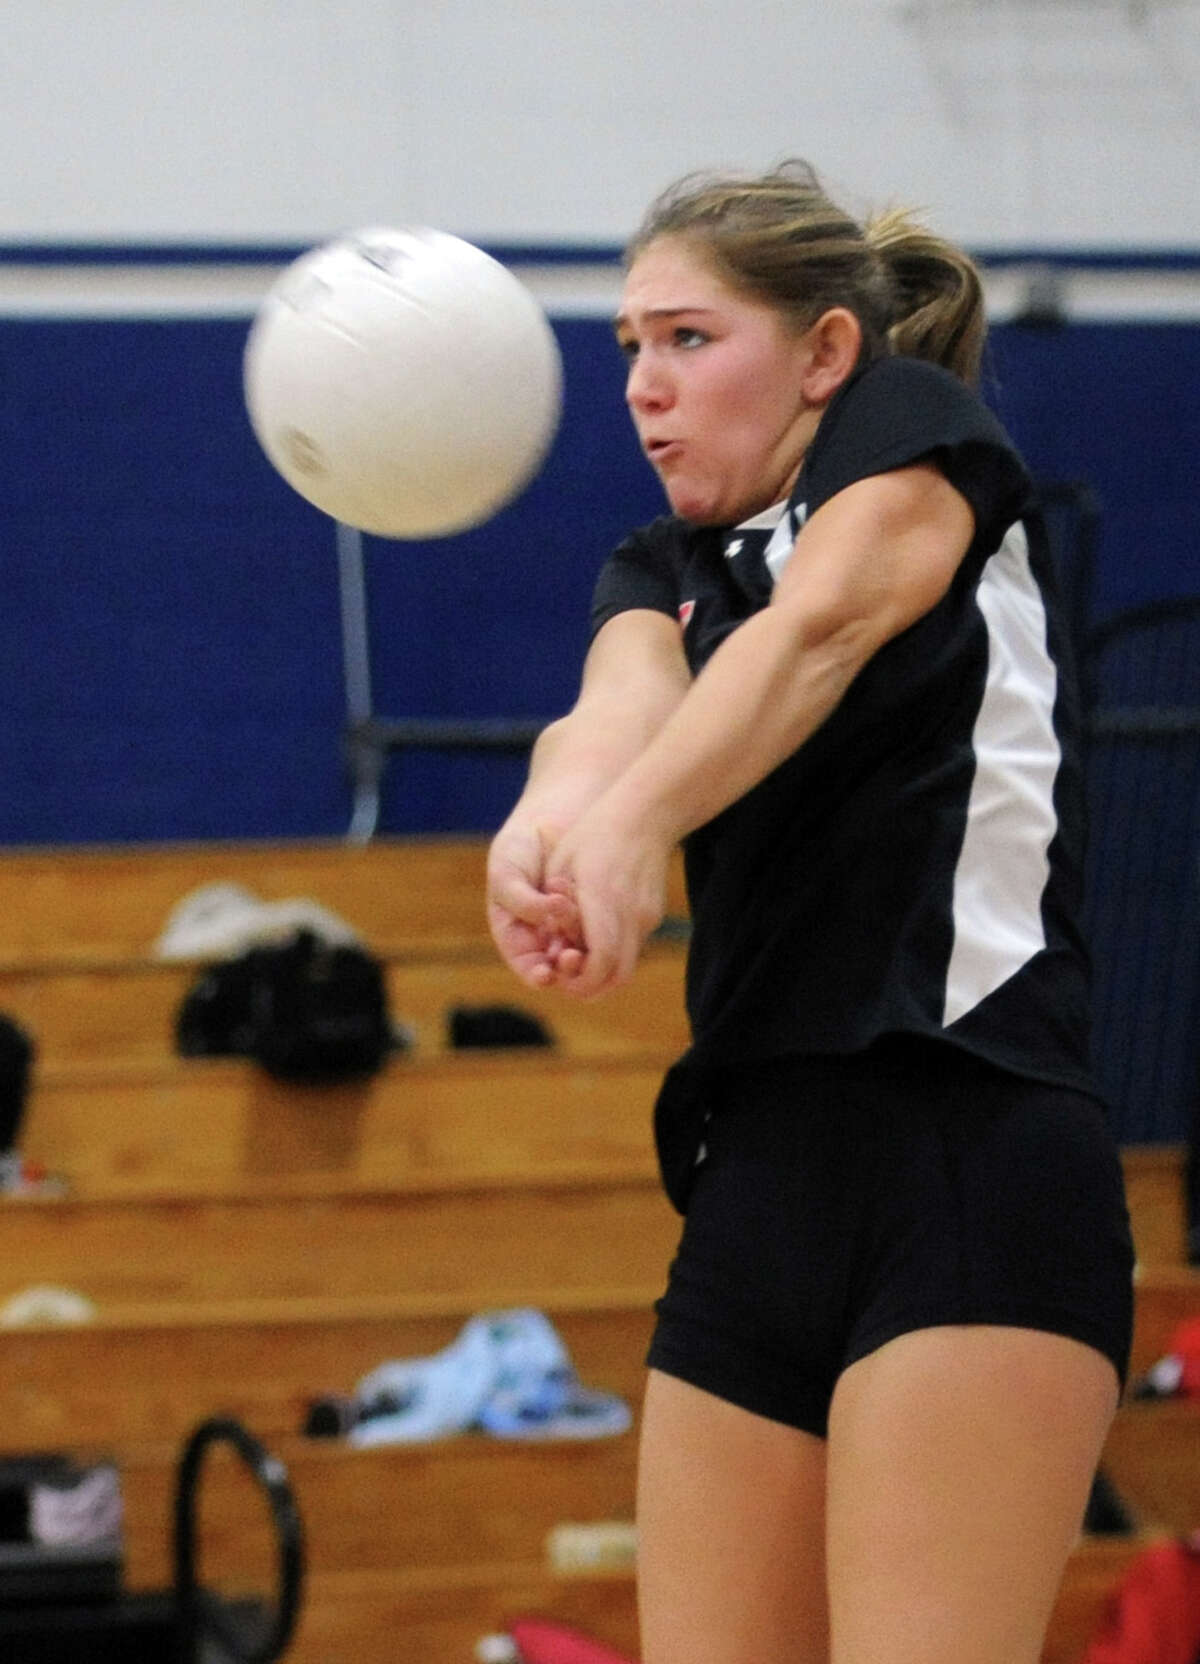 New Canaan's Emma Stracke returns the ball to Staples in the second round Class LL girls volleyball tournament Saturday, Nov. 12, 2011 at Staples High School.